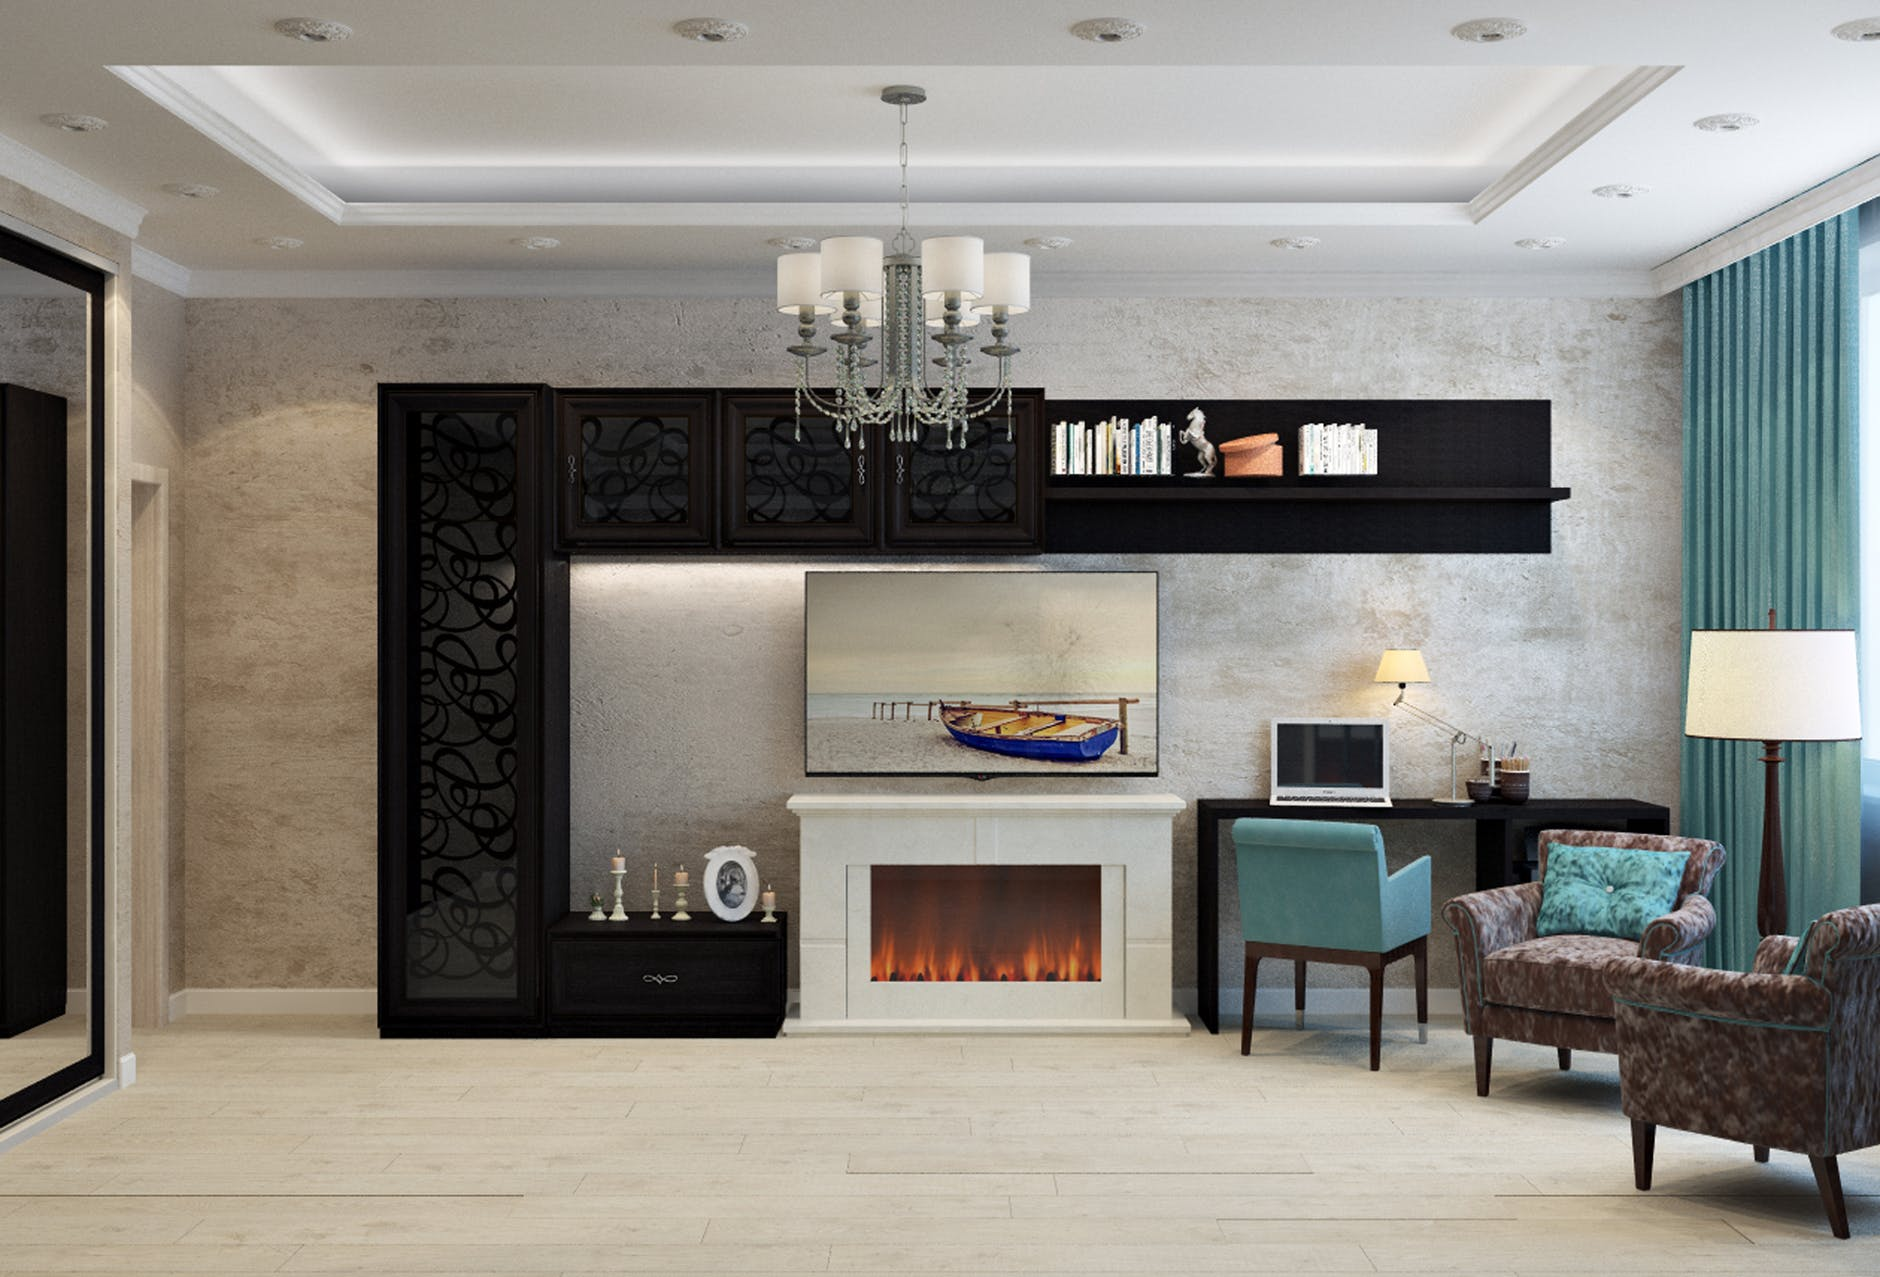 Top 5 Best Electric Fireplaces You Can Buy Today Updated 2020